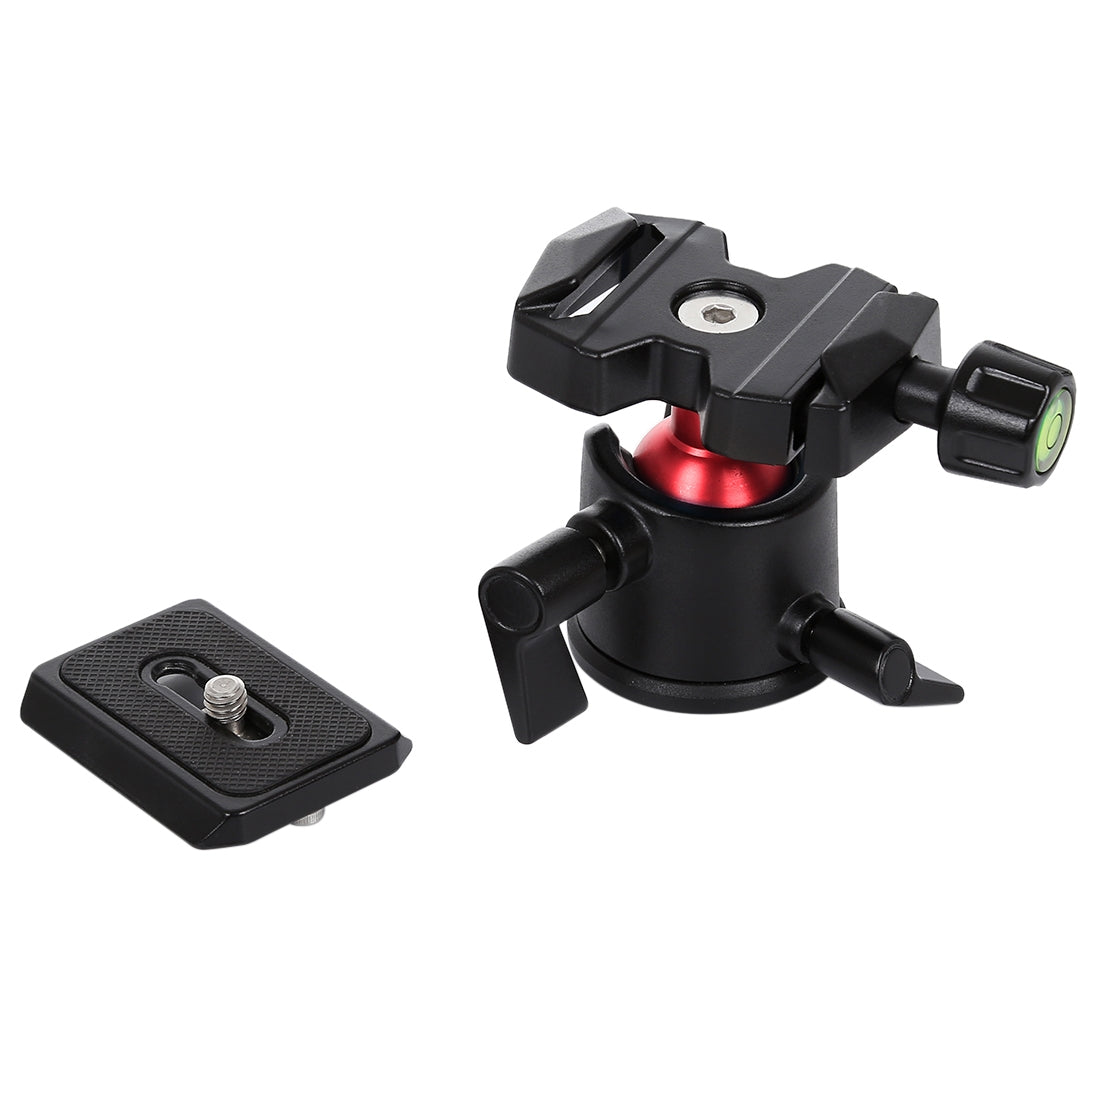 360 Degree Rotation Panoramic Metal Ball Head with Quick Release Plate for DSLR & Digital Cameras(Black)